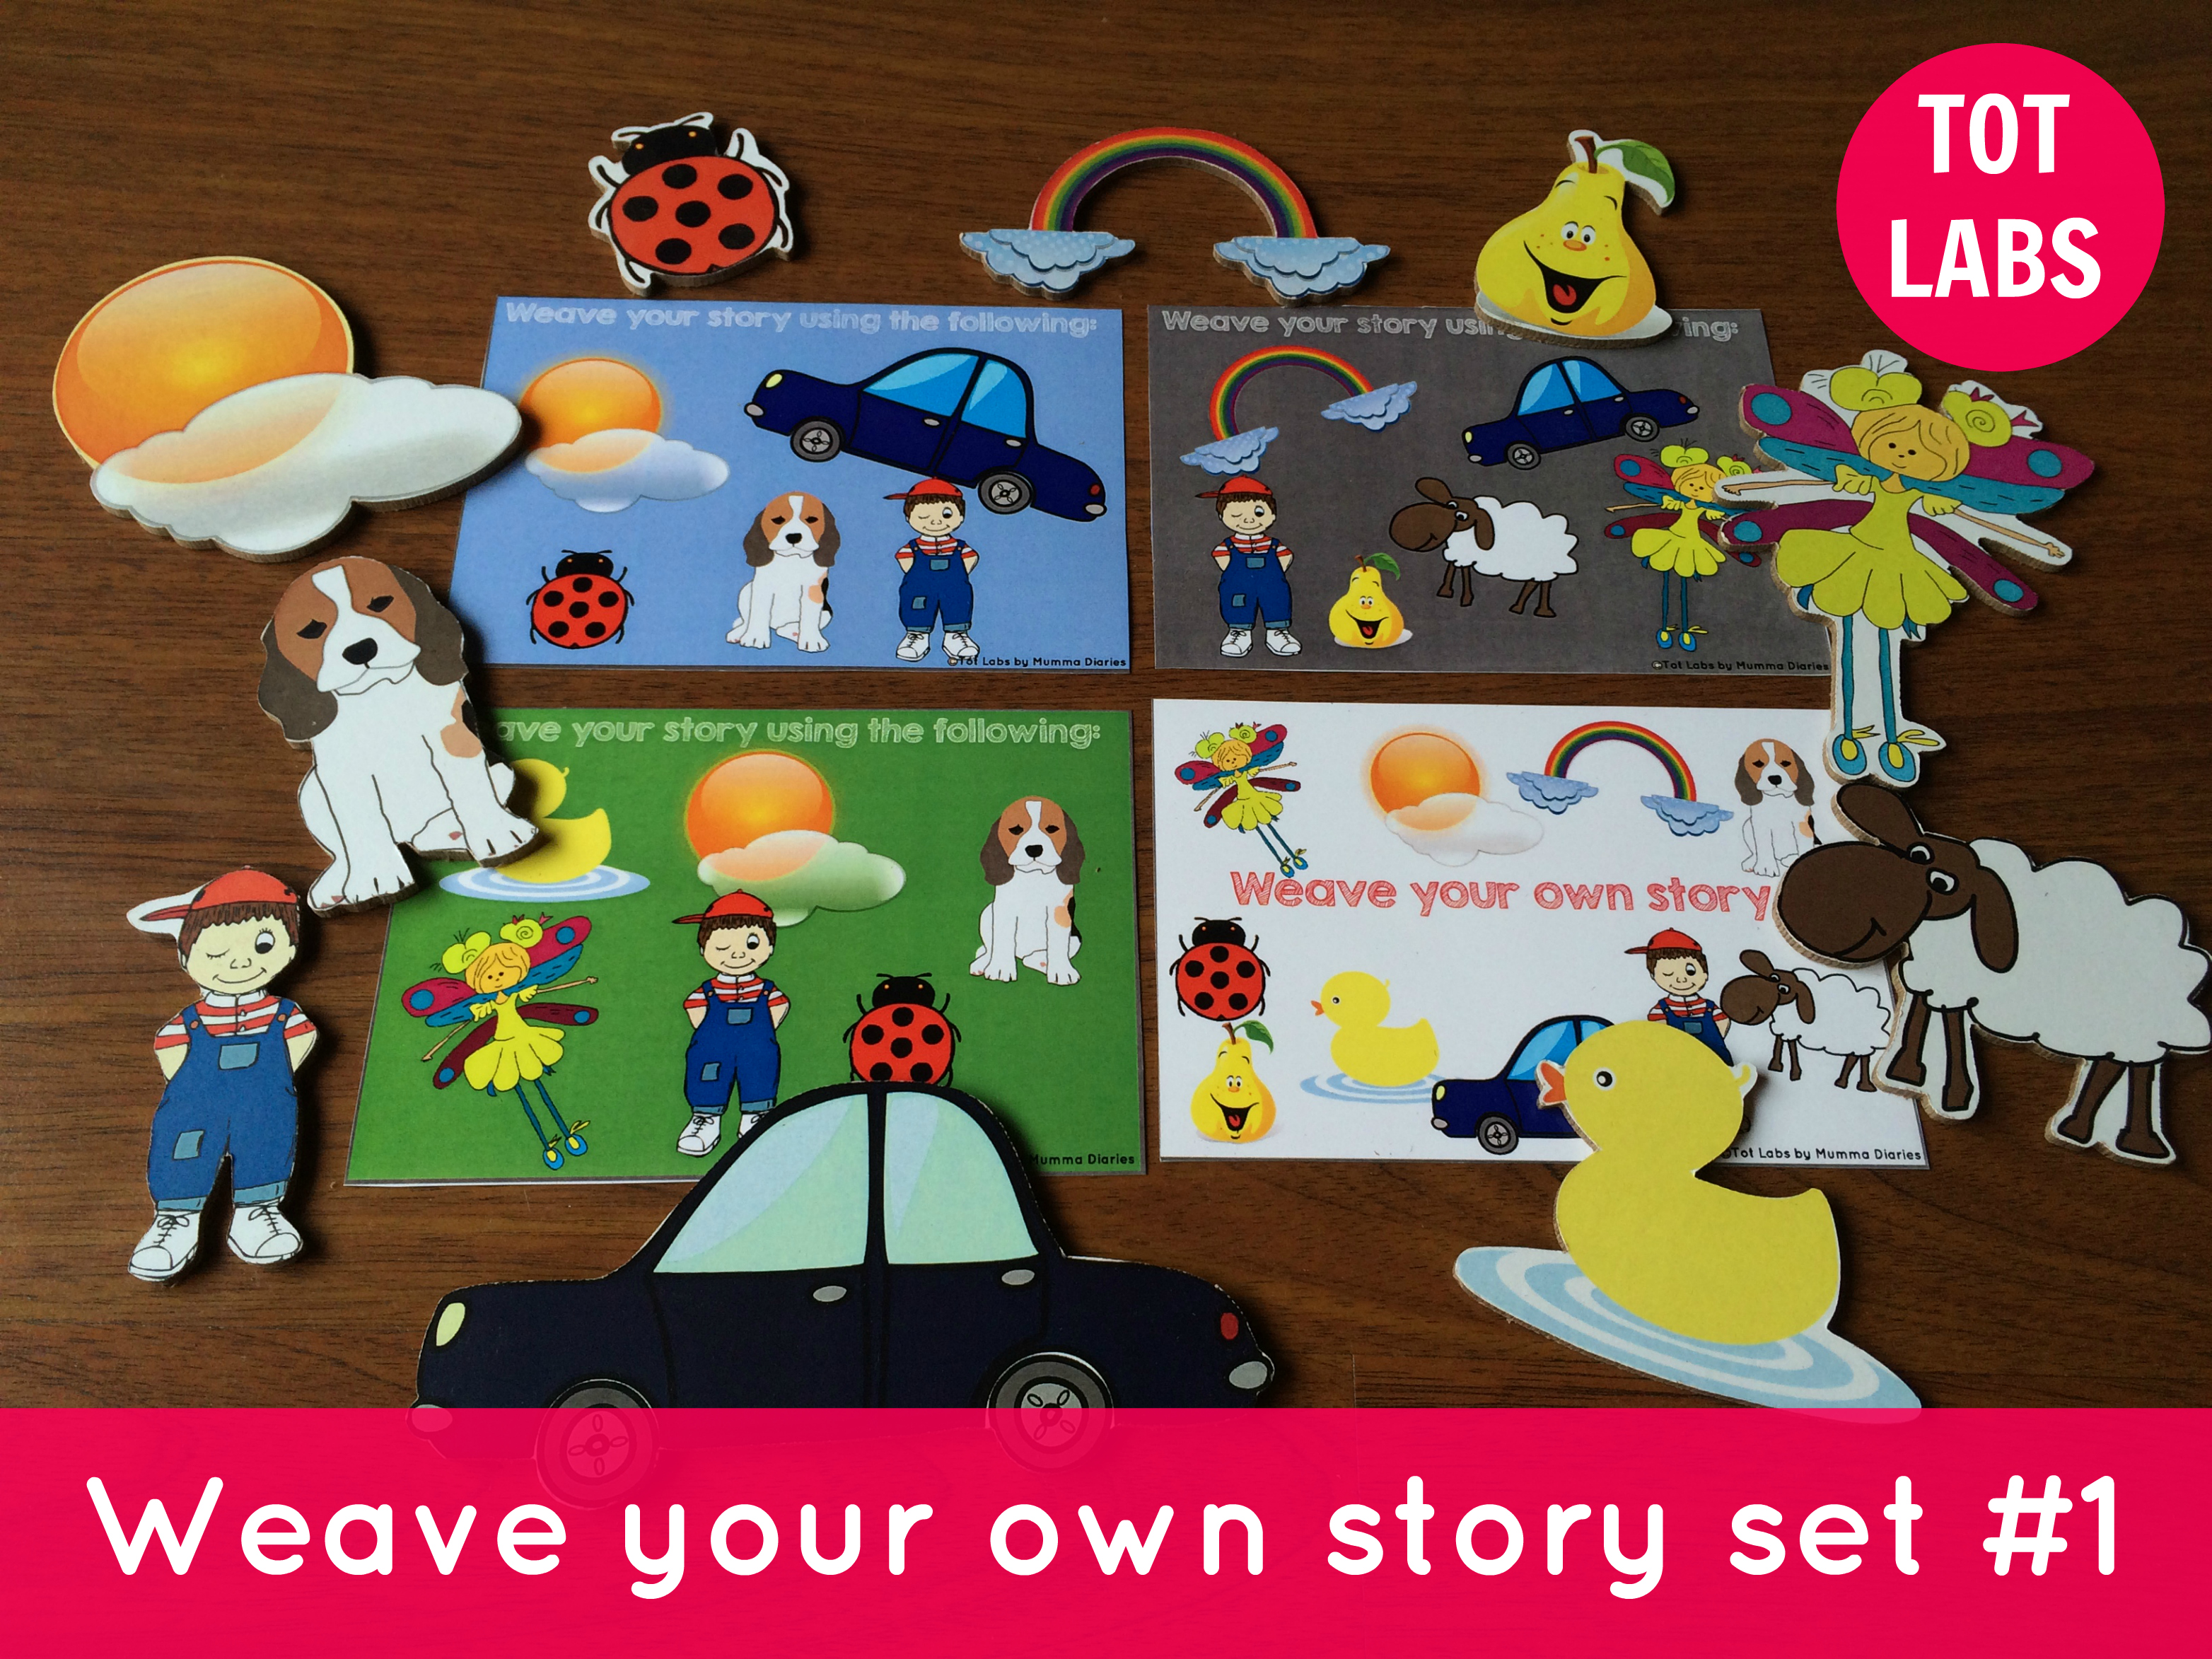 WEAVE YOUR STORY #1